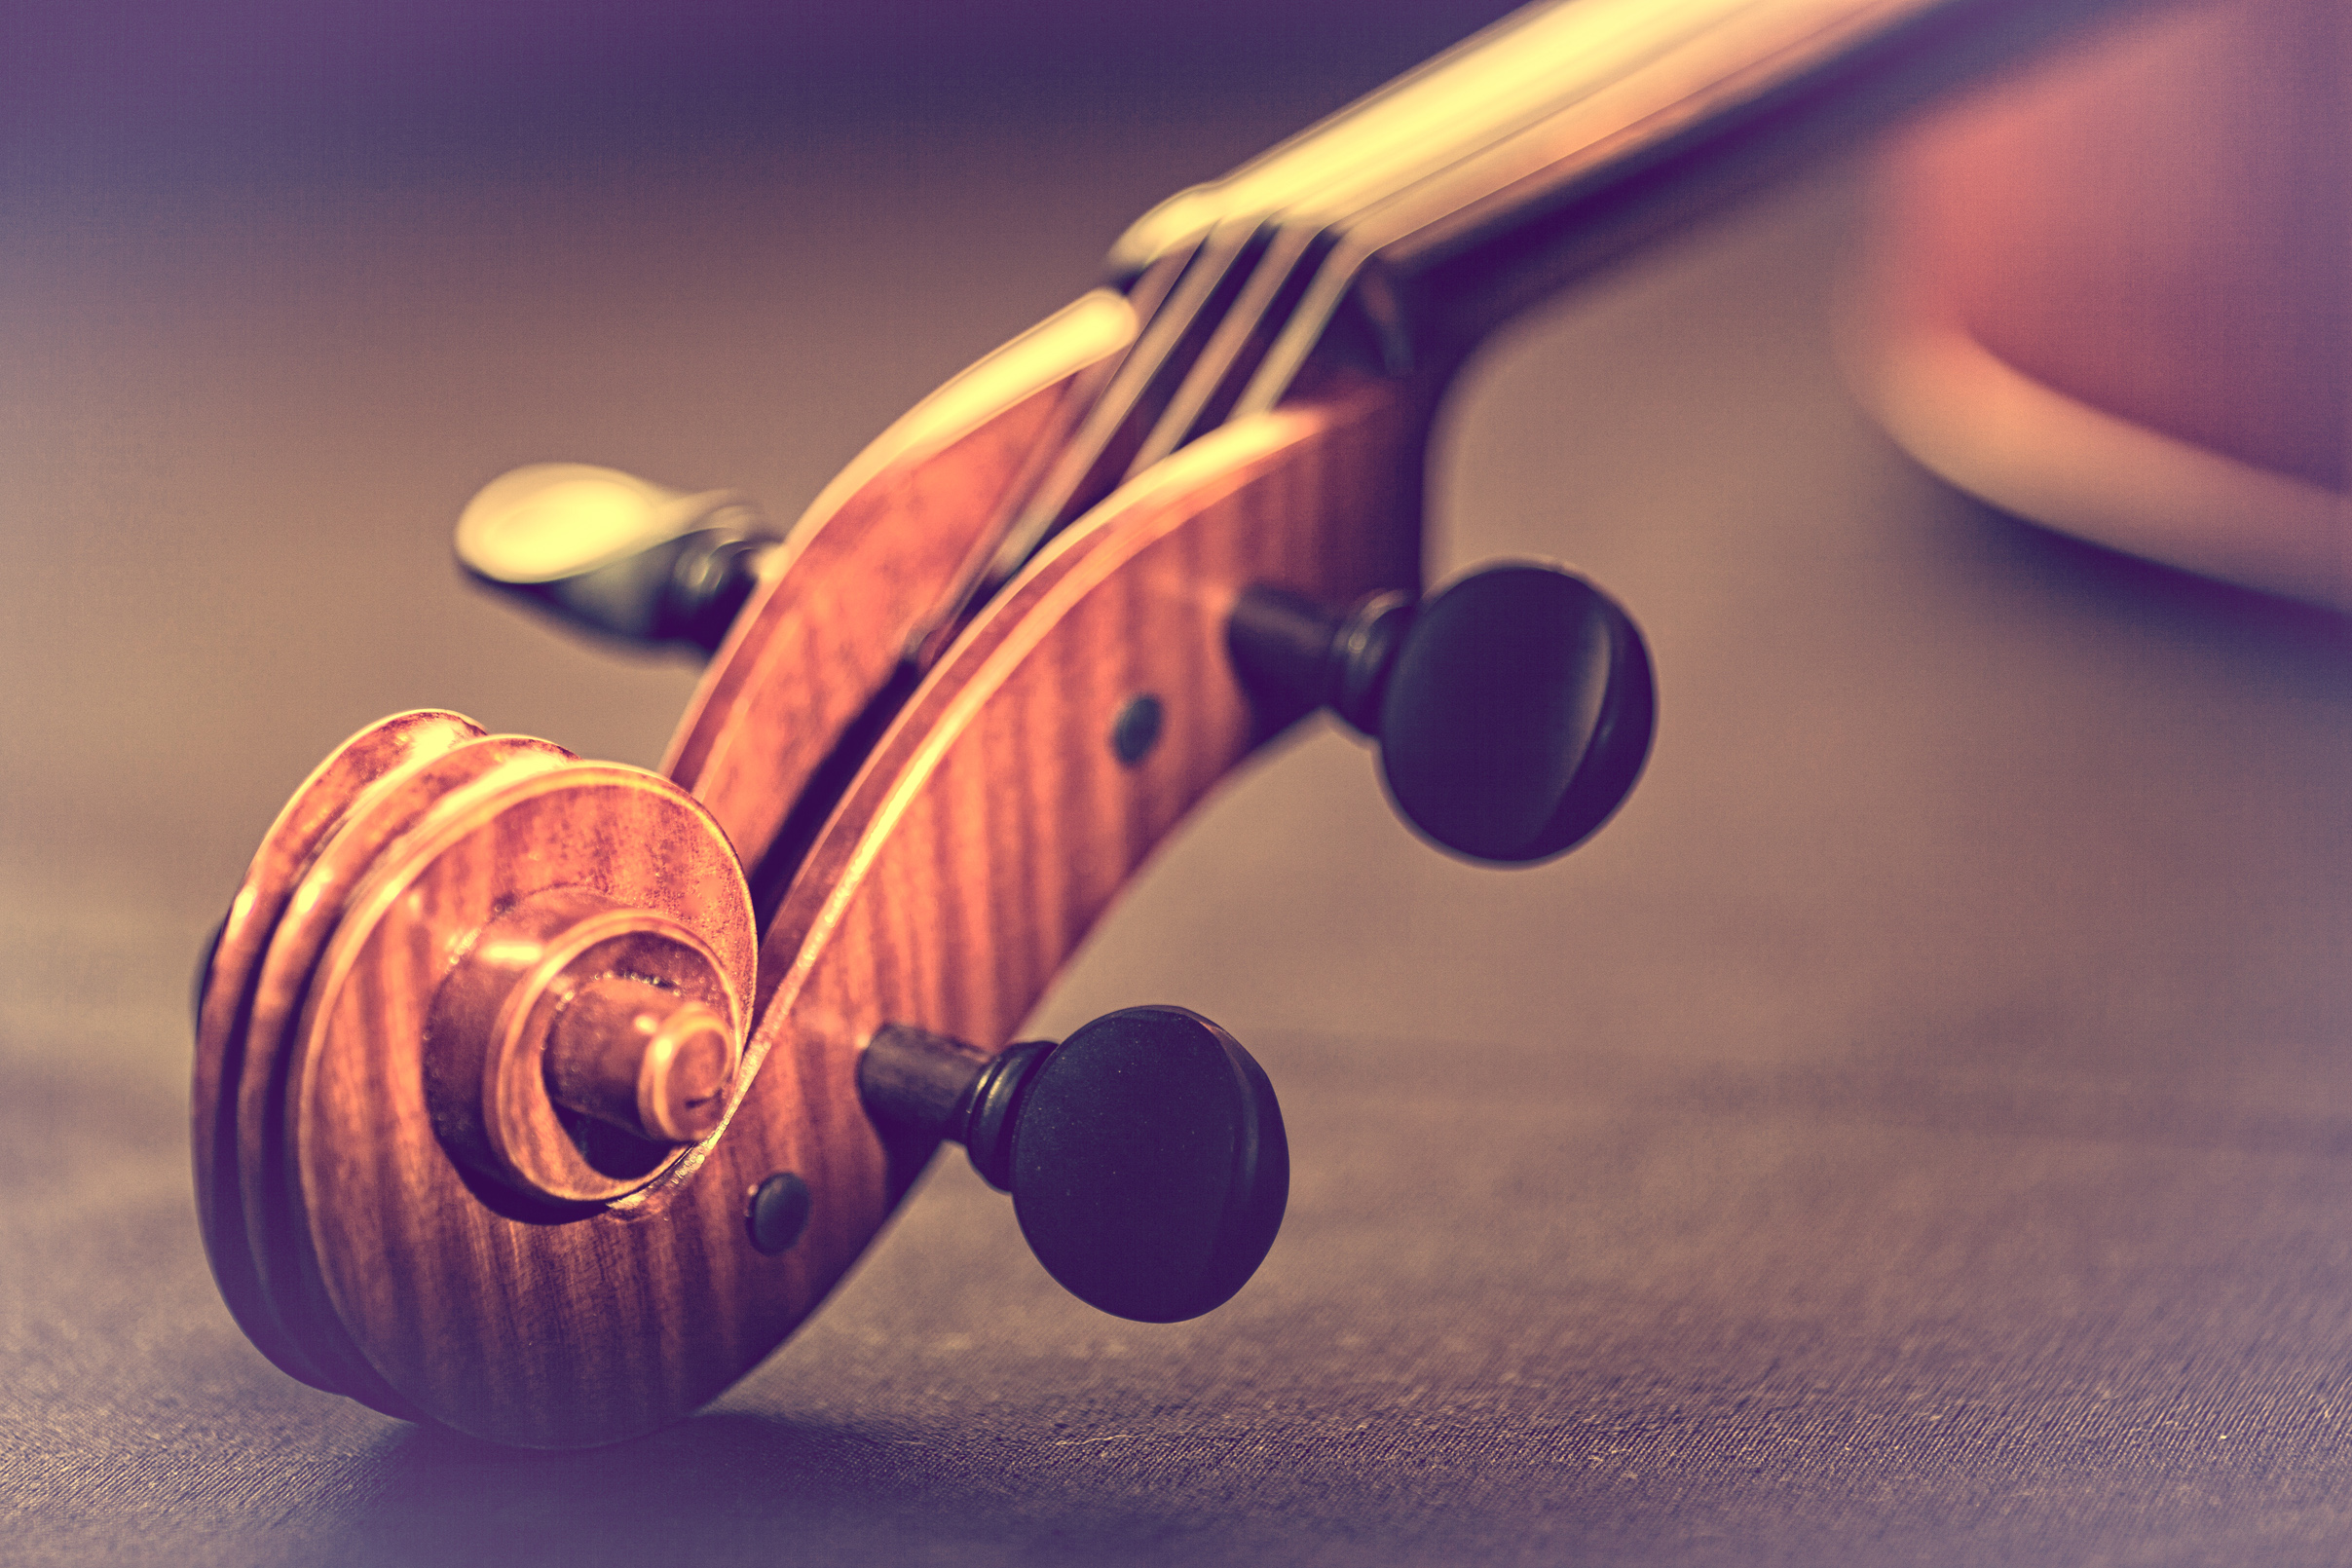 Violin - scroll and pegbox close-up - retro looks warm colors photo